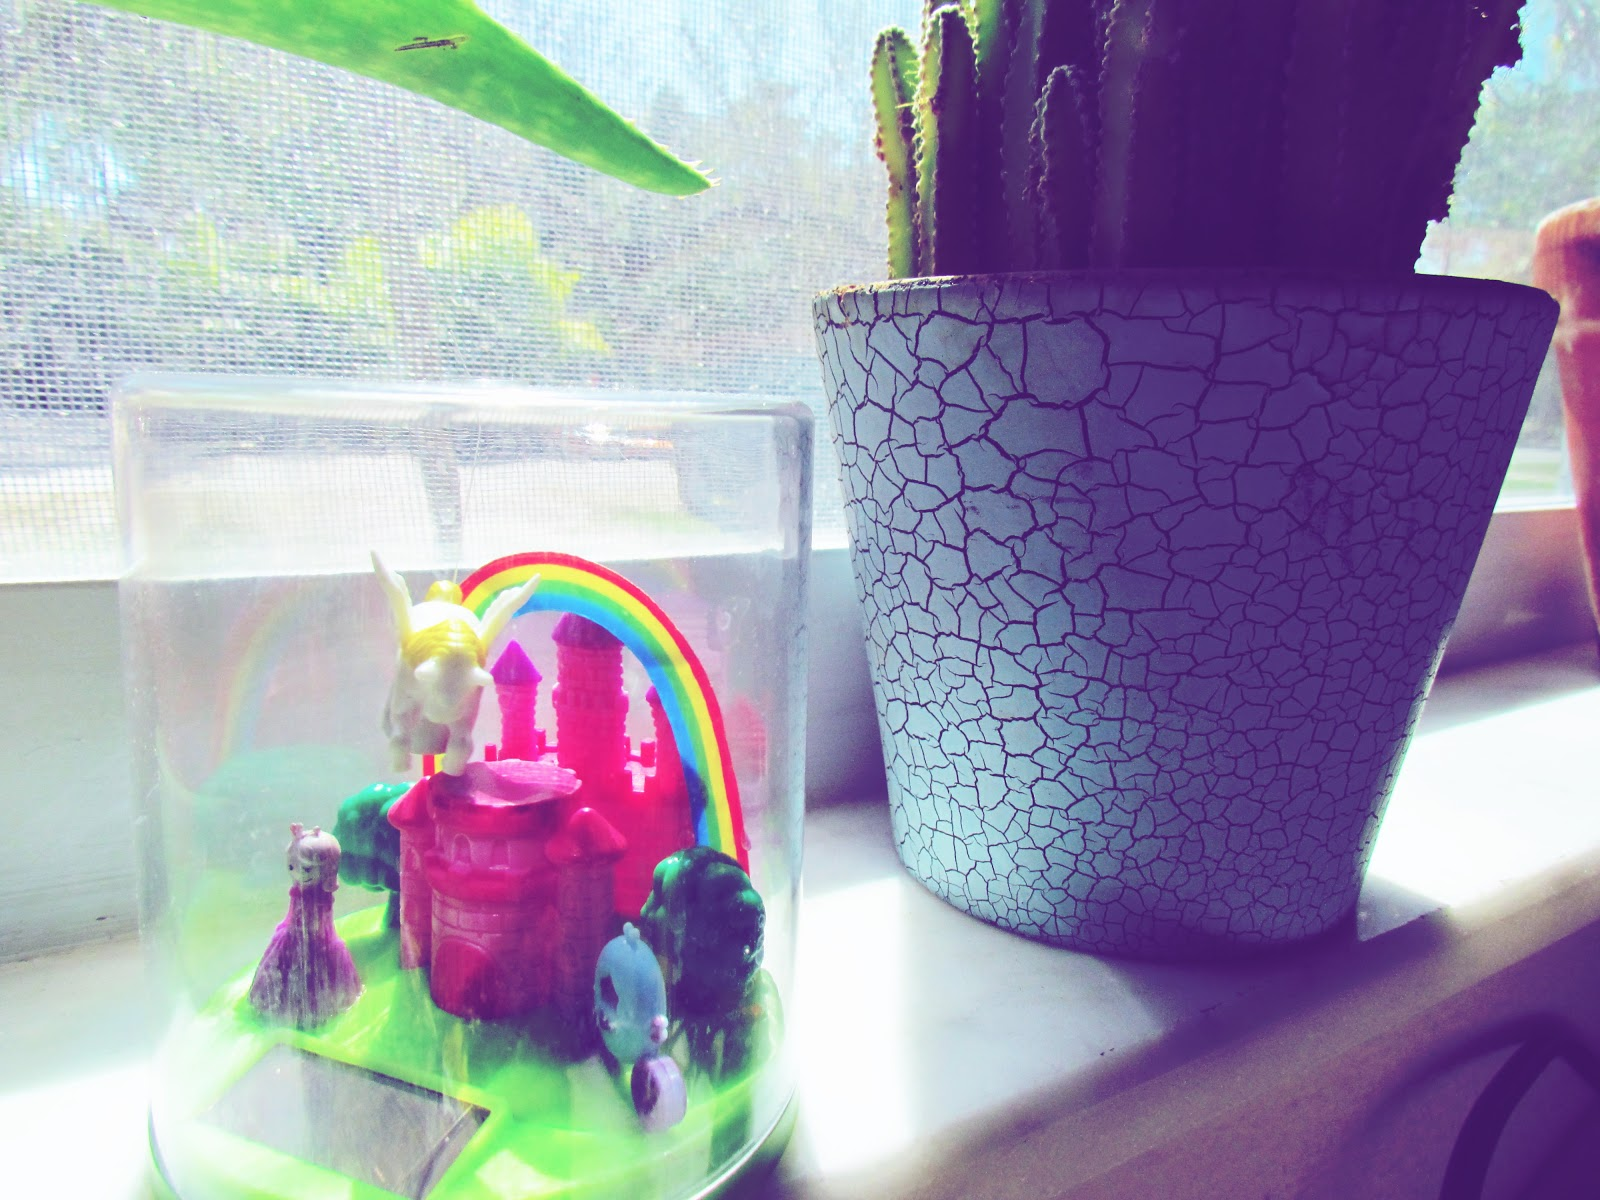 A crackled paint blue pottery with a plant and a tiny biosphere with a castle, a princess doll, and a magical unicorn and rainbow in the sky